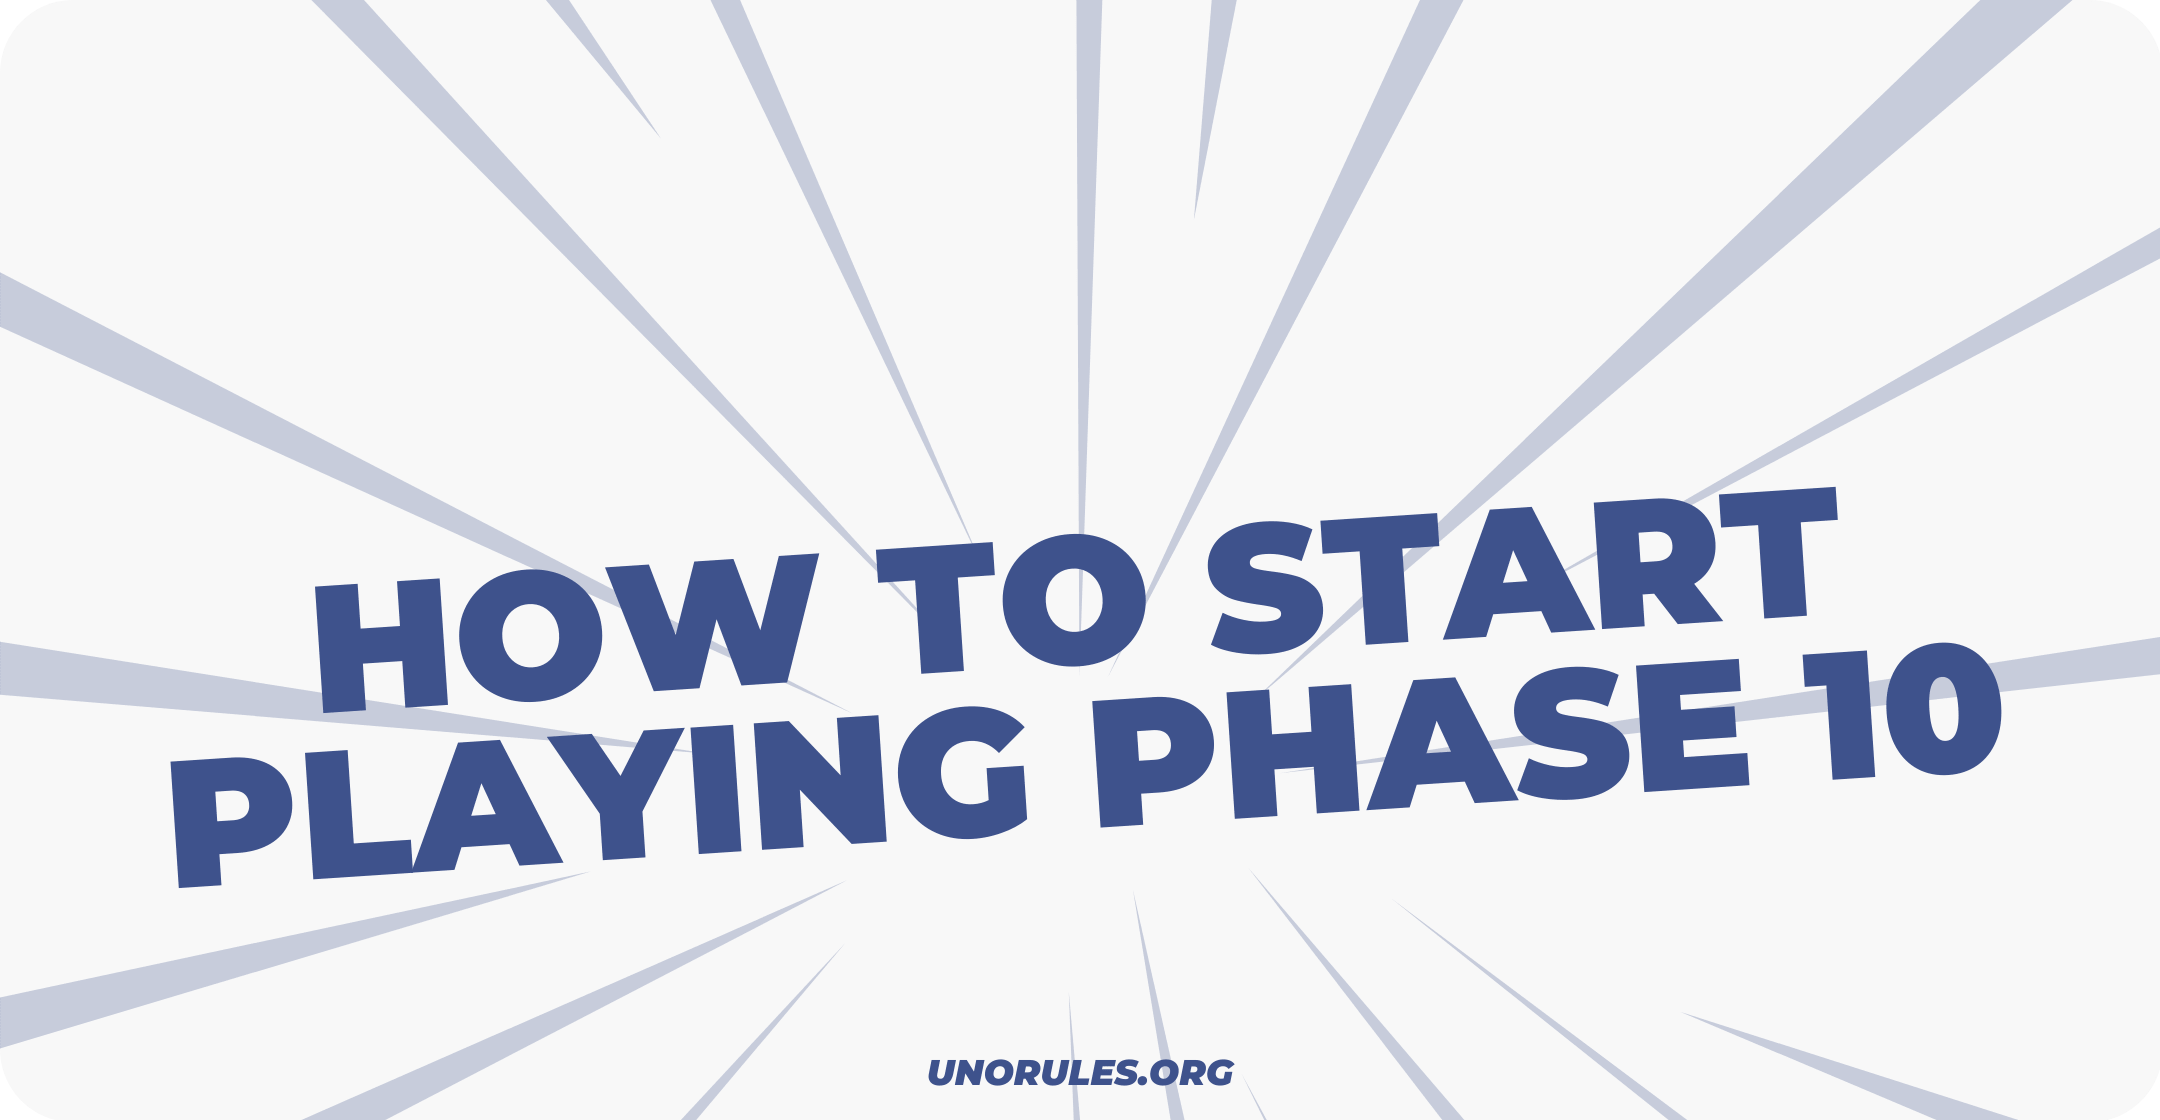 How to start playing Phase 10